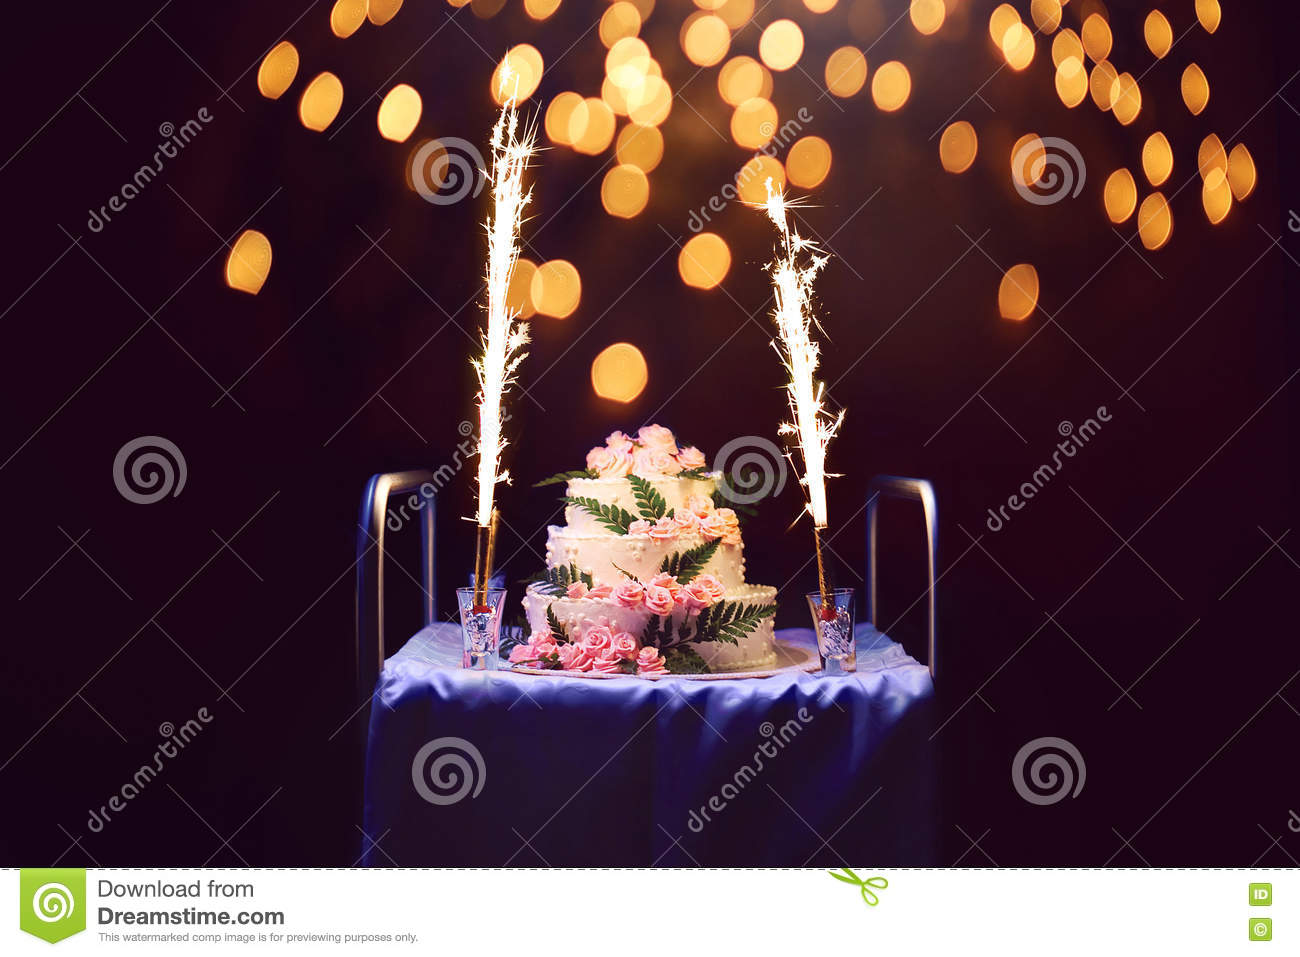 Sensational Celebration Holiday Birthday Cake With Candles And Fireworks B Personalised Birthday Cards Paralily Jamesorg